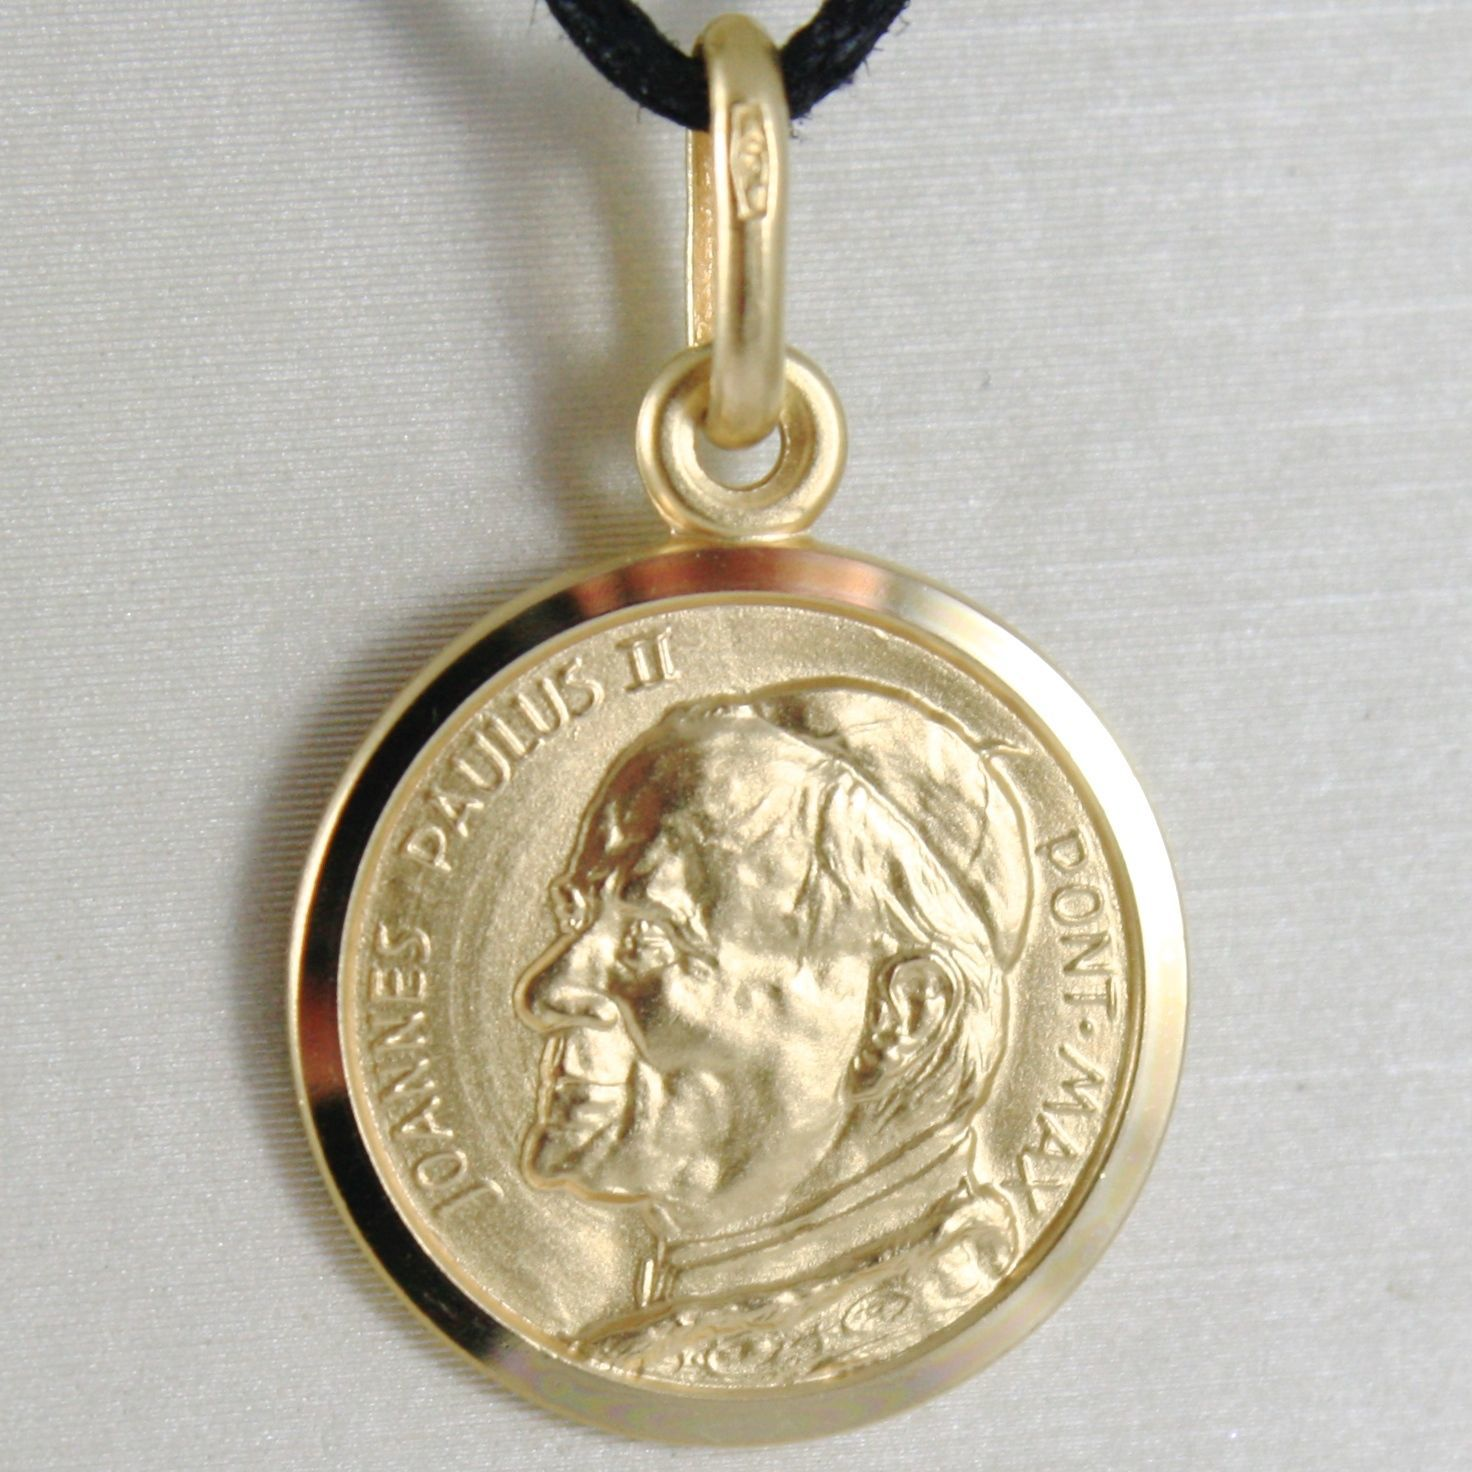 PENDANT MEDAL YELLOW GOLD 750 18K, SANTO FATHER GIOVANNI PAOLO II 15 MM, ITALY